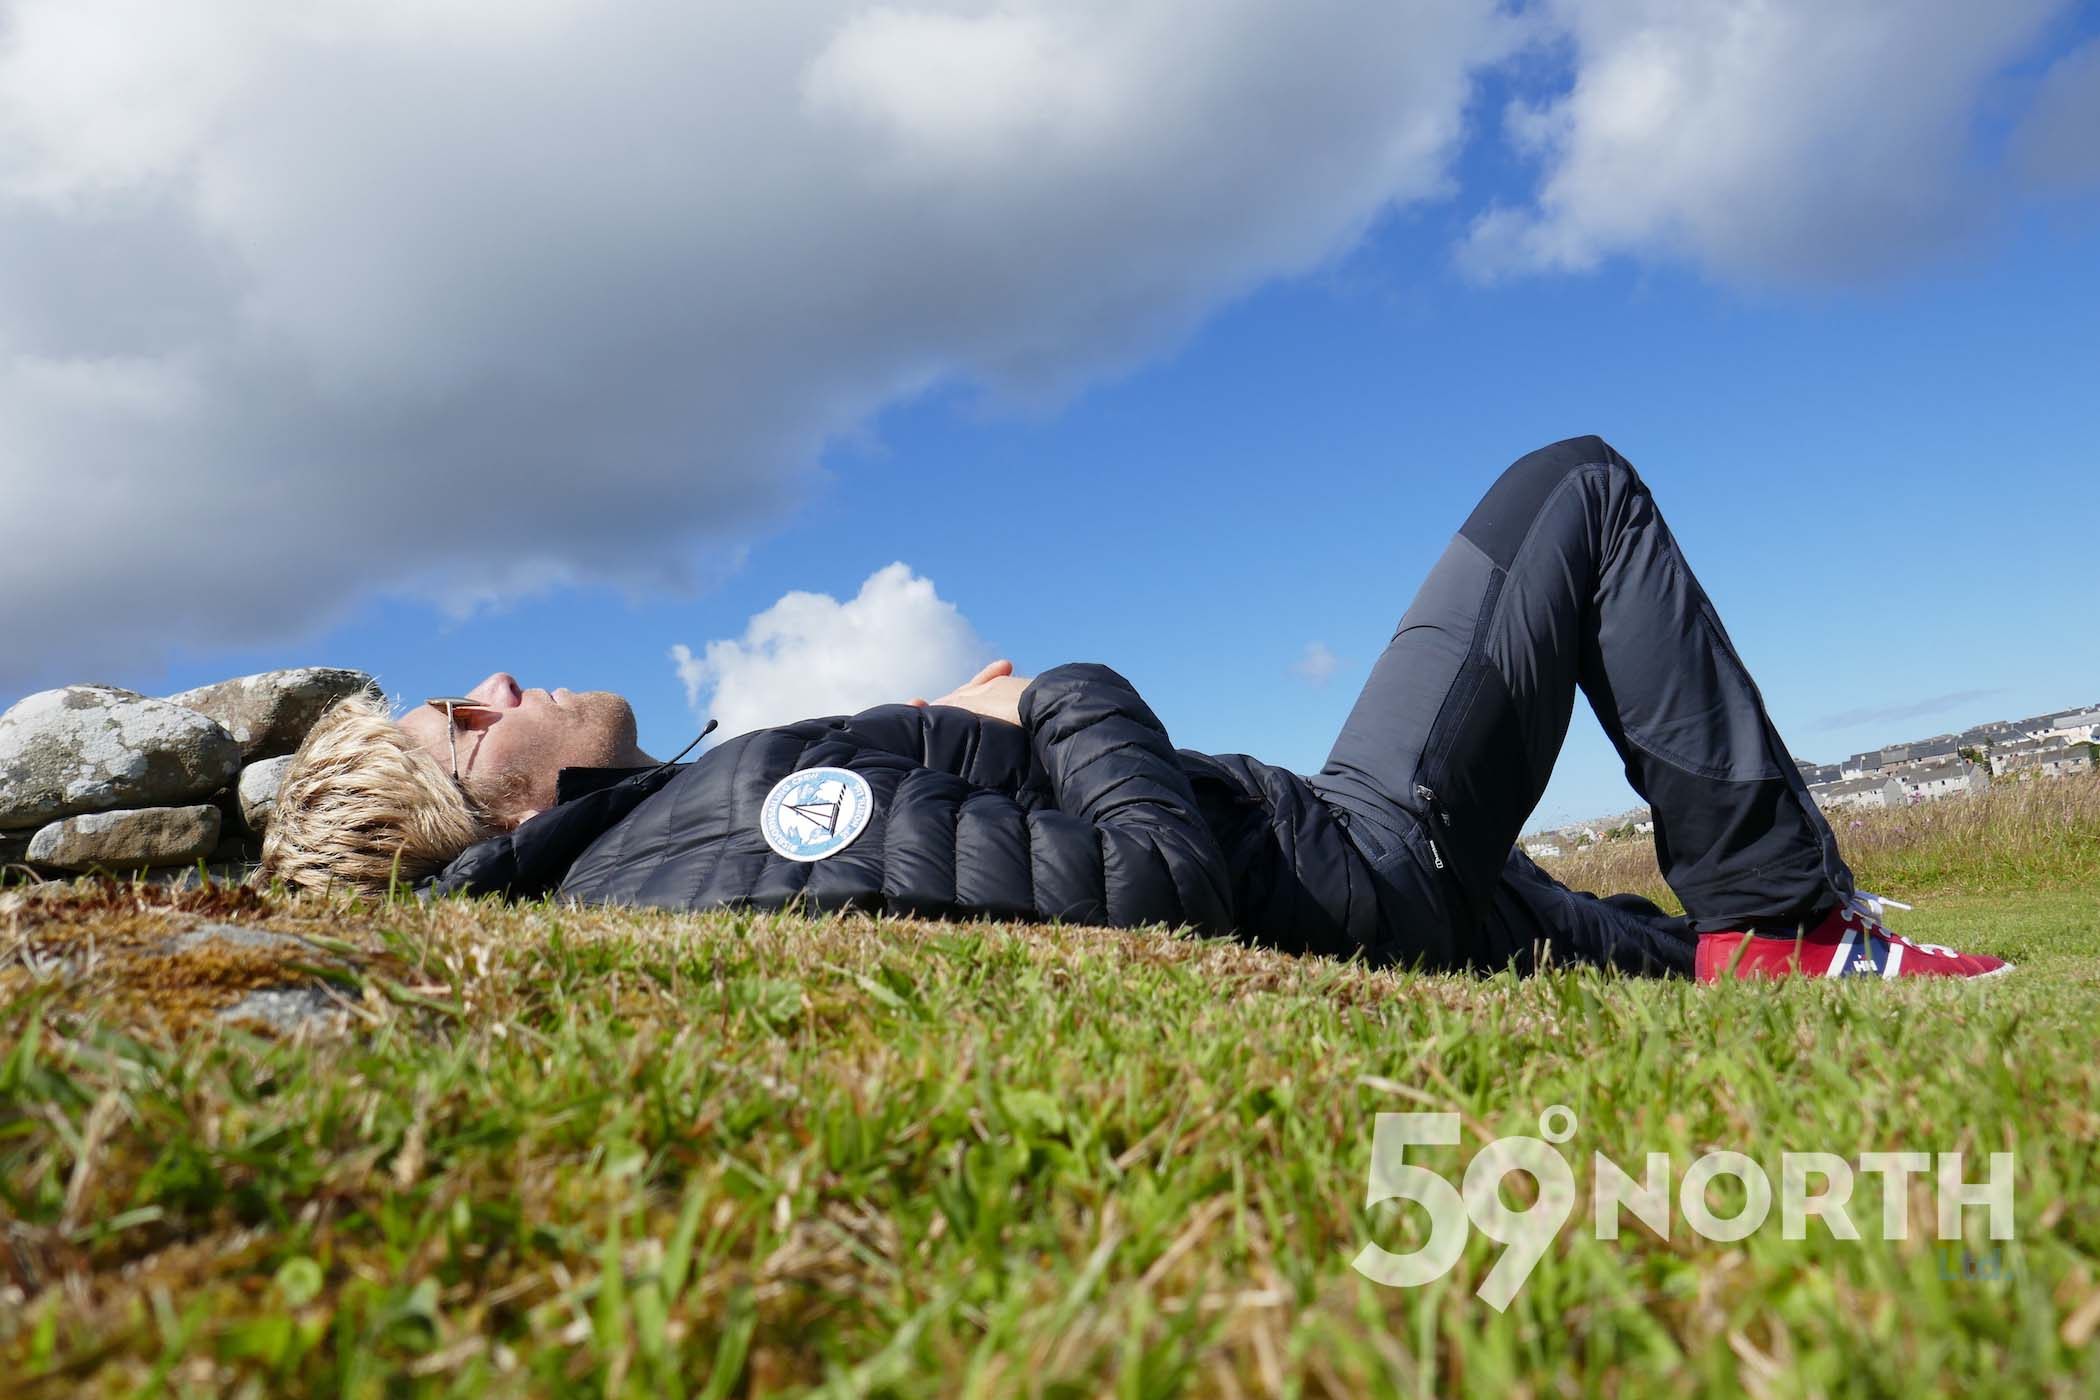 Nap time at the Broch of Clickimin ruins, Lerwick, Shetland!!  Leg 8, 2017: Sweden to Scotland 59-north.com